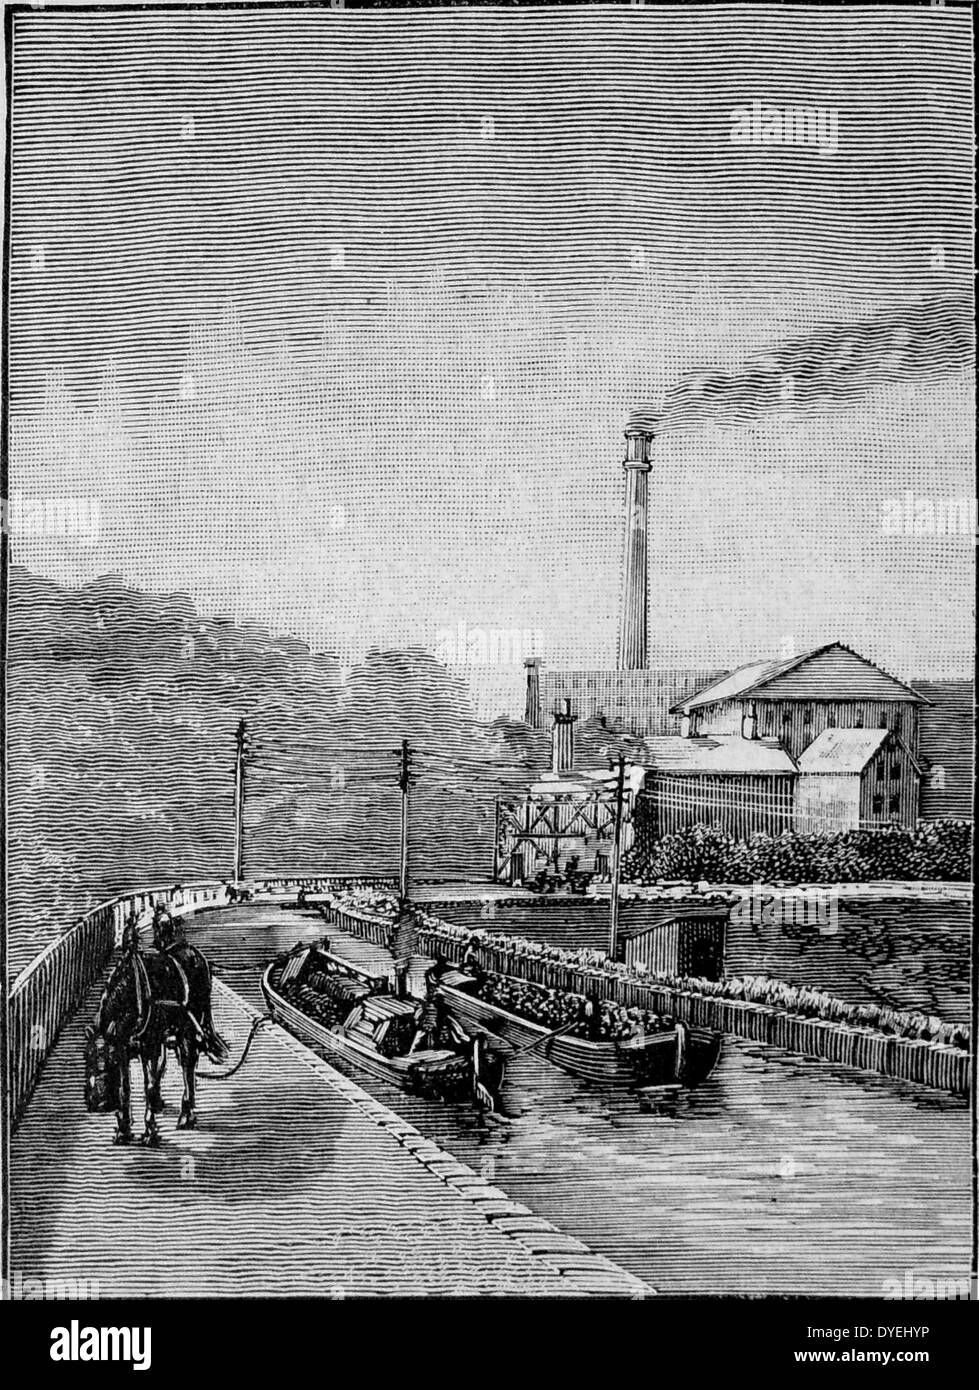 Horse-drawn barges crossing on the Barton viaduct over the river Irwell on the Duke of Bridgewater's canal, built by James Bindley. Engraving, London, 1892. Stock Photo